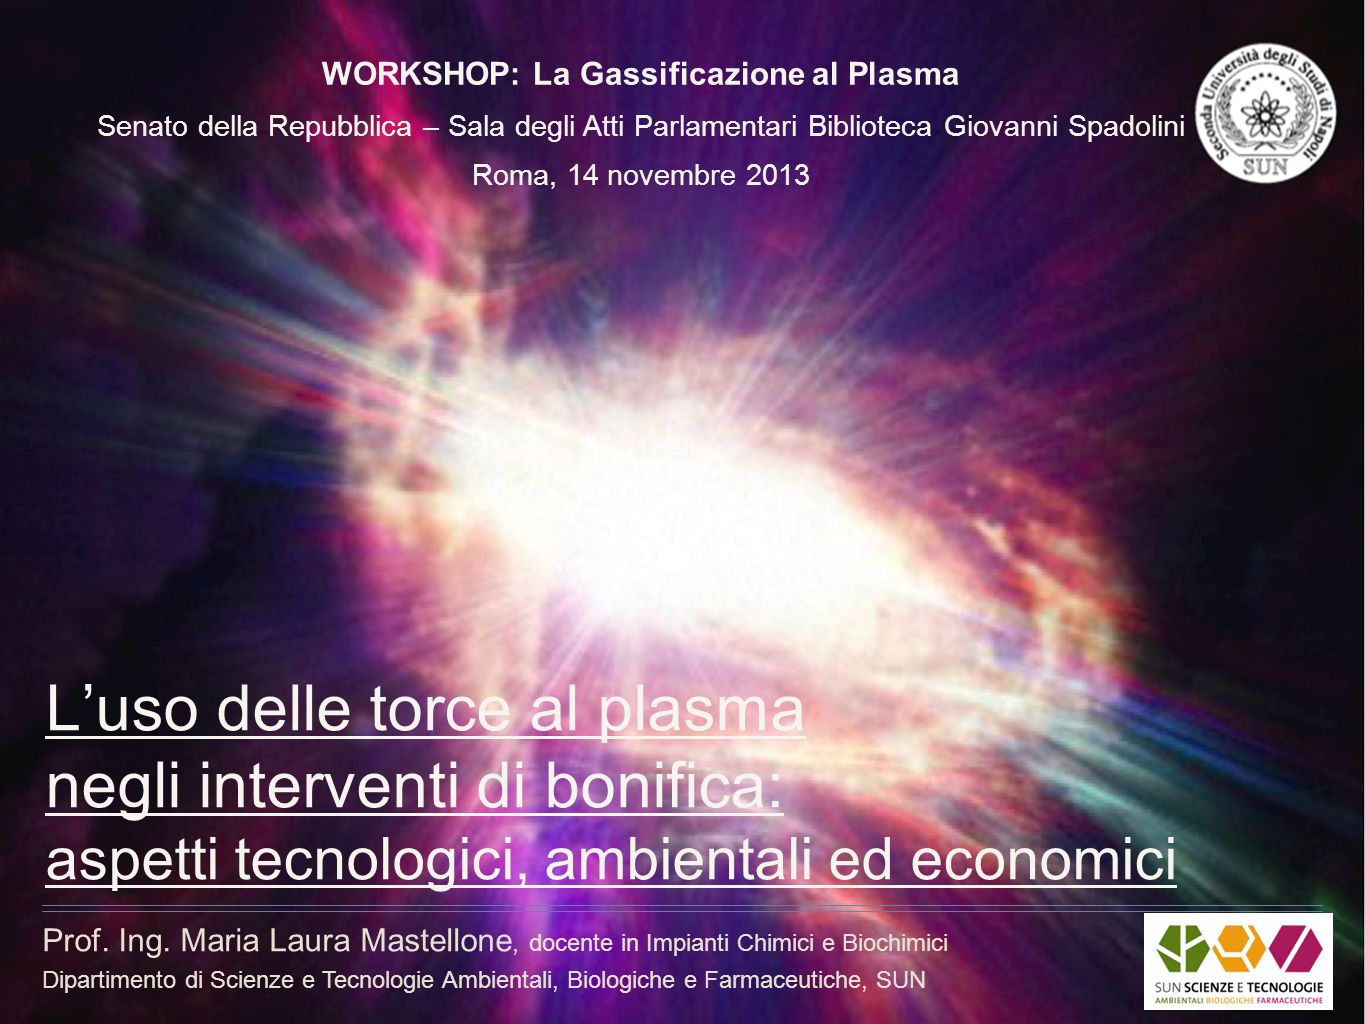 WORKSHOP: La Gassificazione al Plasma